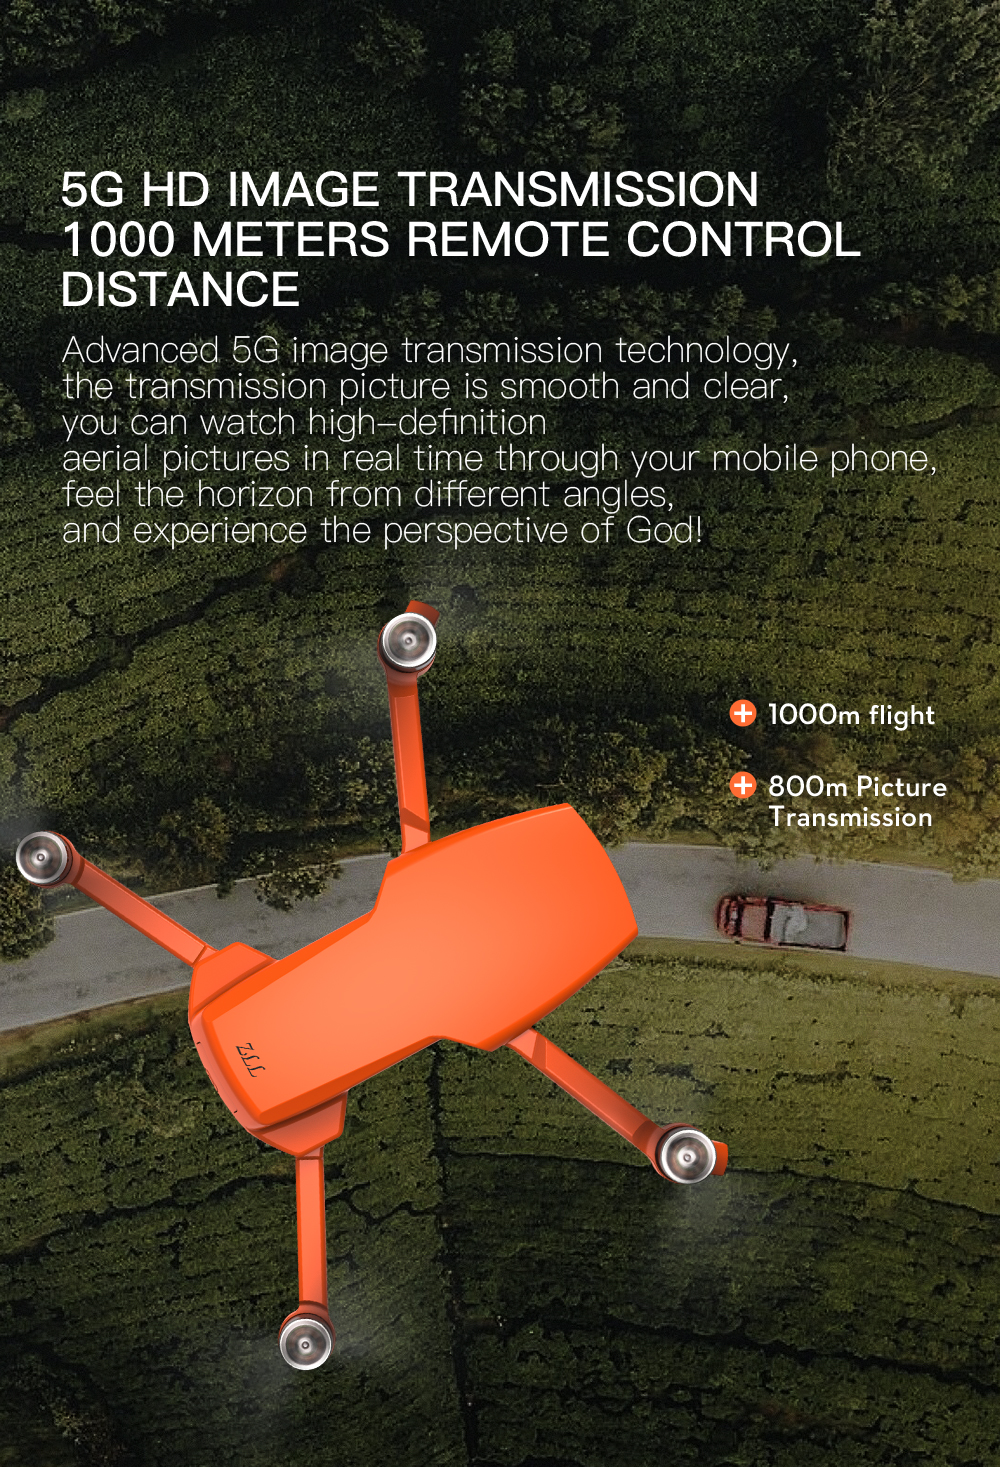 H90c7000490d441e6a582dff3e8a6c837C - SG108 Pro GPS Drone 4K Profesional Dual HD Camera 2-Axis Gimbal 5G WiFi Aerial Photography Brushless Foldable Quadcopter RC Dron